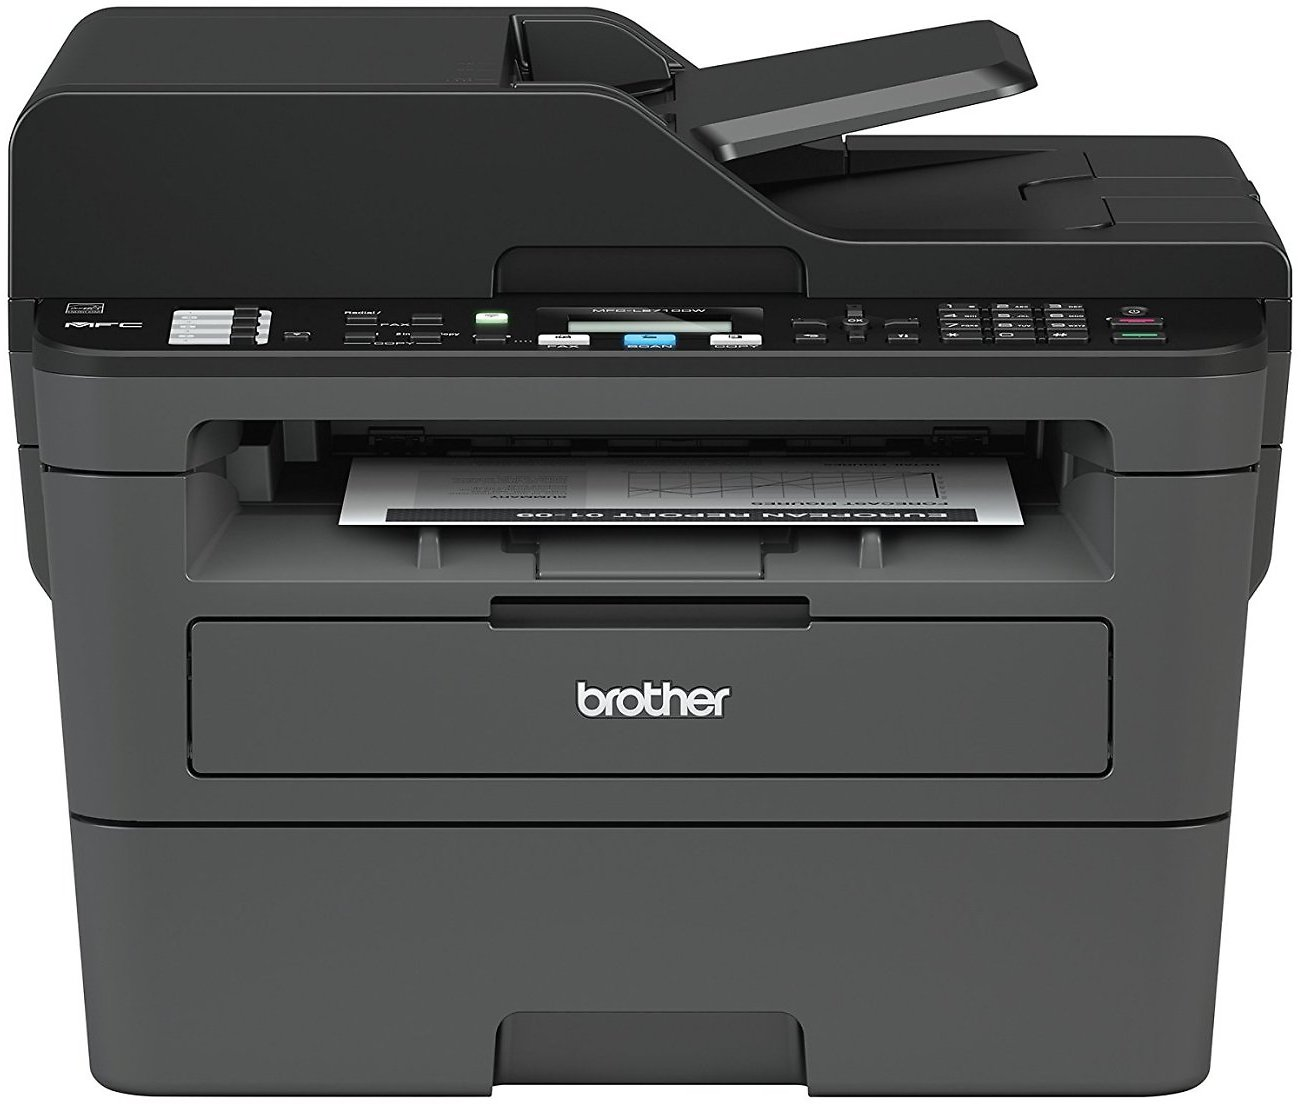 Brother Monochrome Laser Printer (Ships Free)